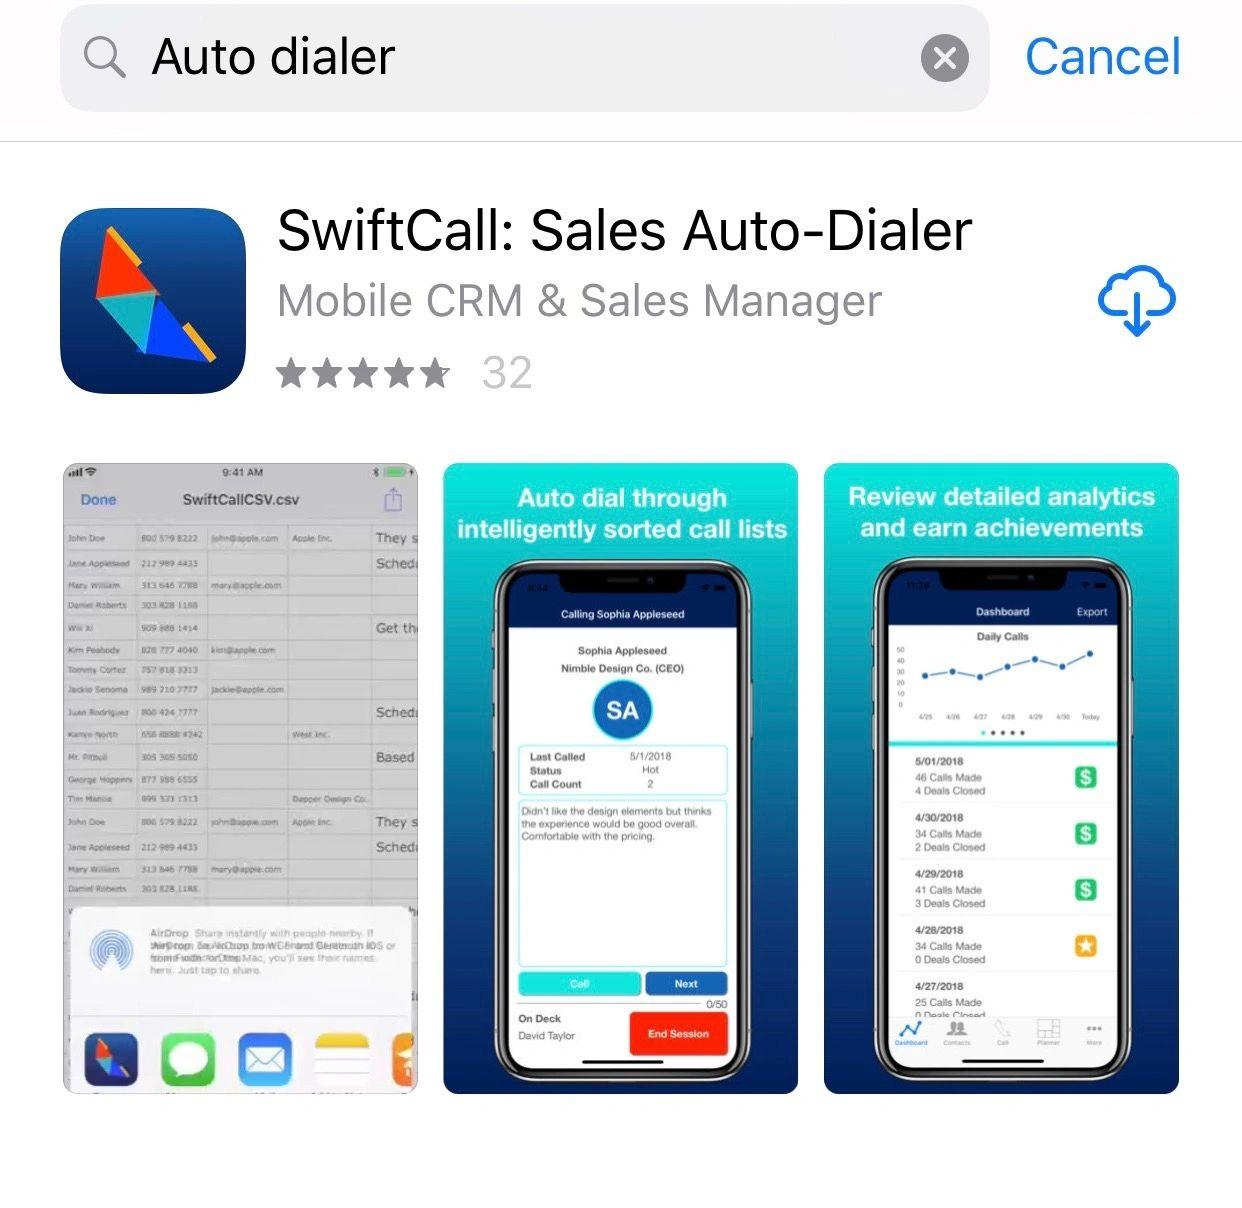 SwiftCall Becomes #1 Auto Dialer on the App Store